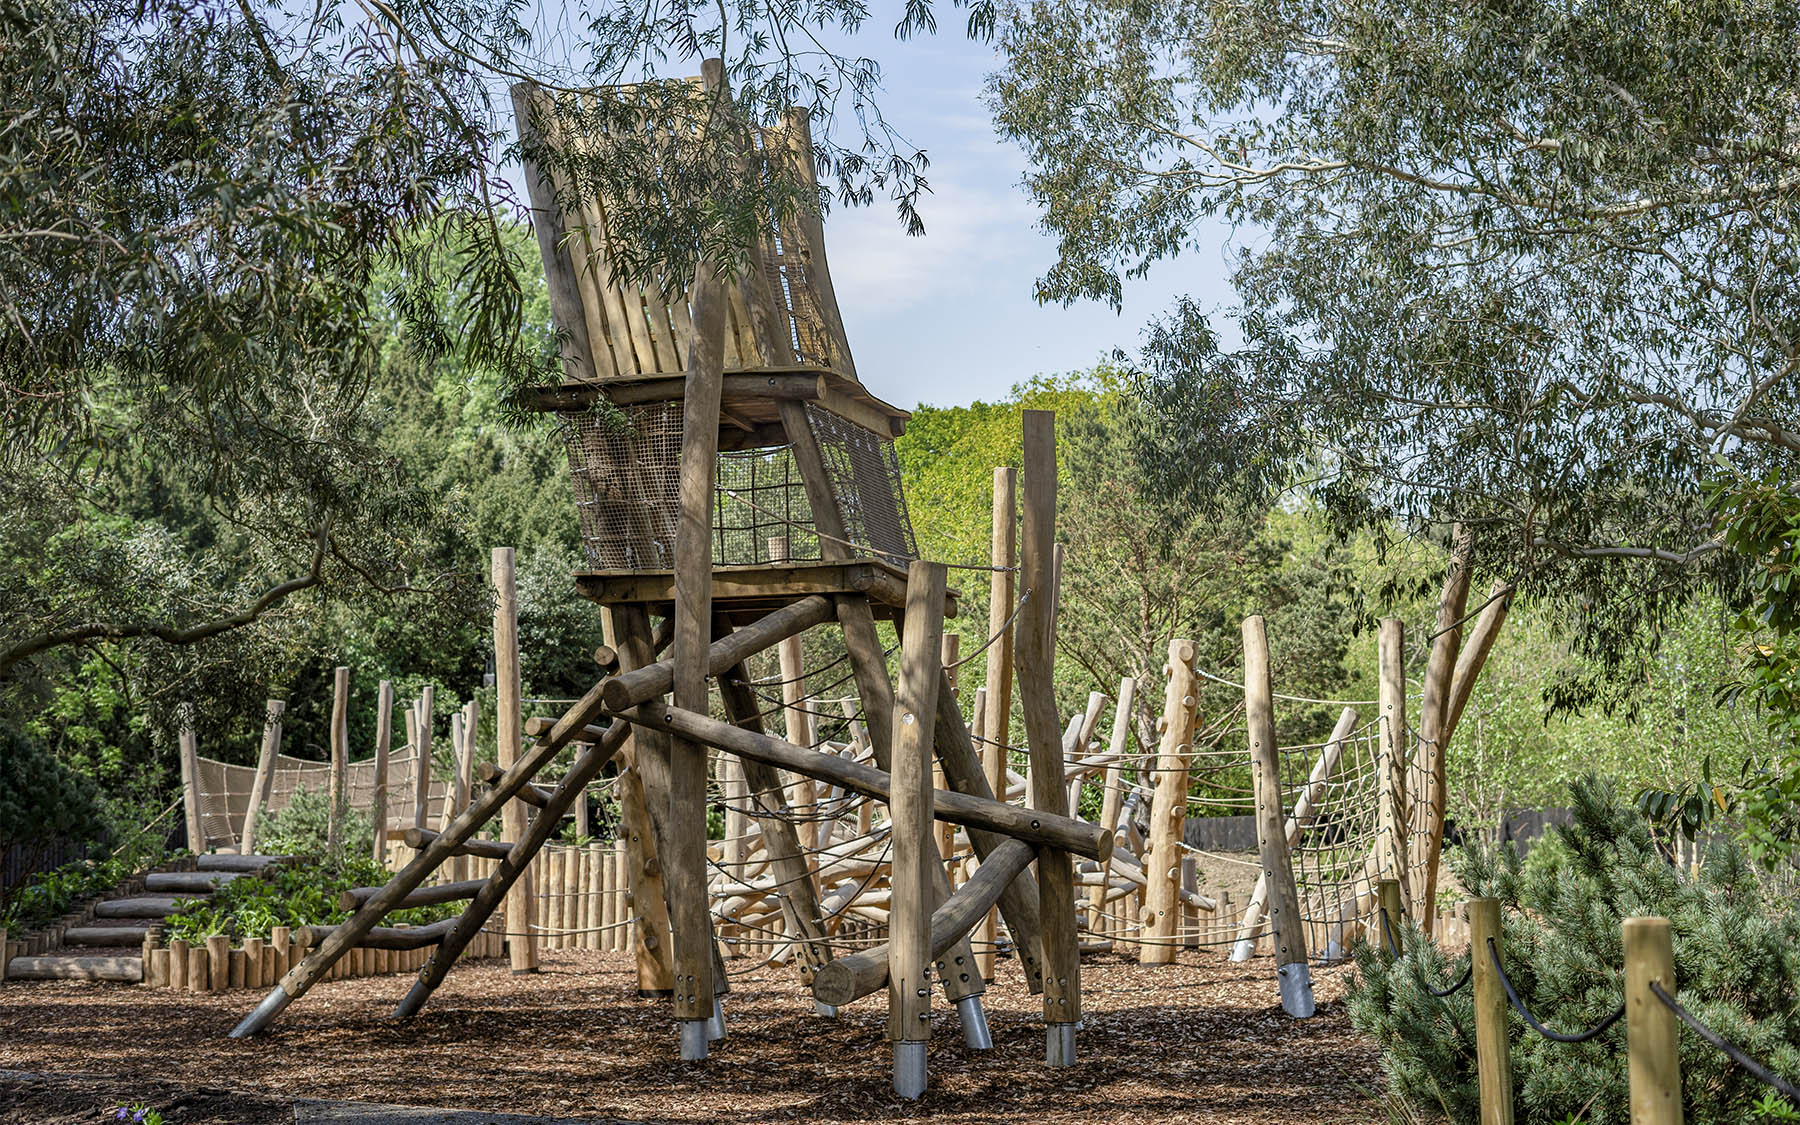 bespoke playgrounds pine tree wilderness